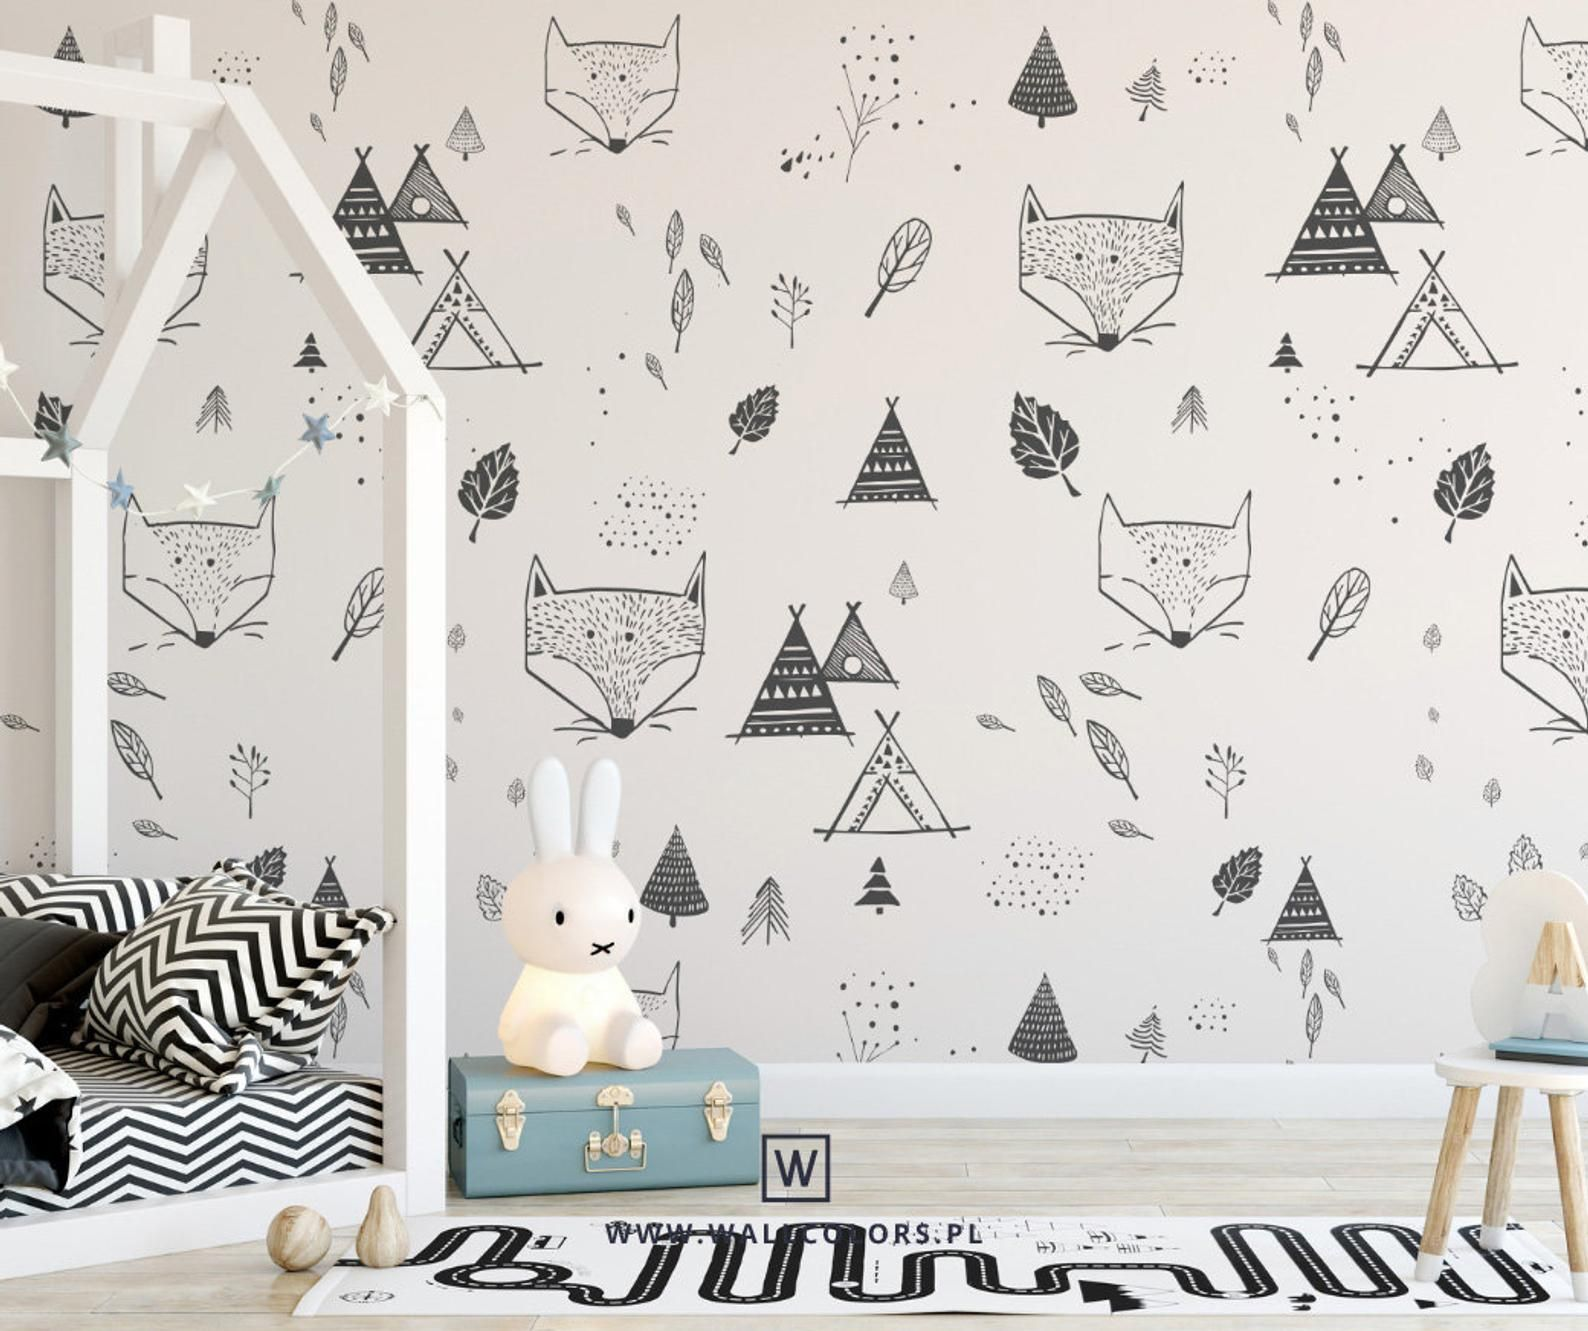 Kids wallpaper, self adhesive, foxes in the forest, fox